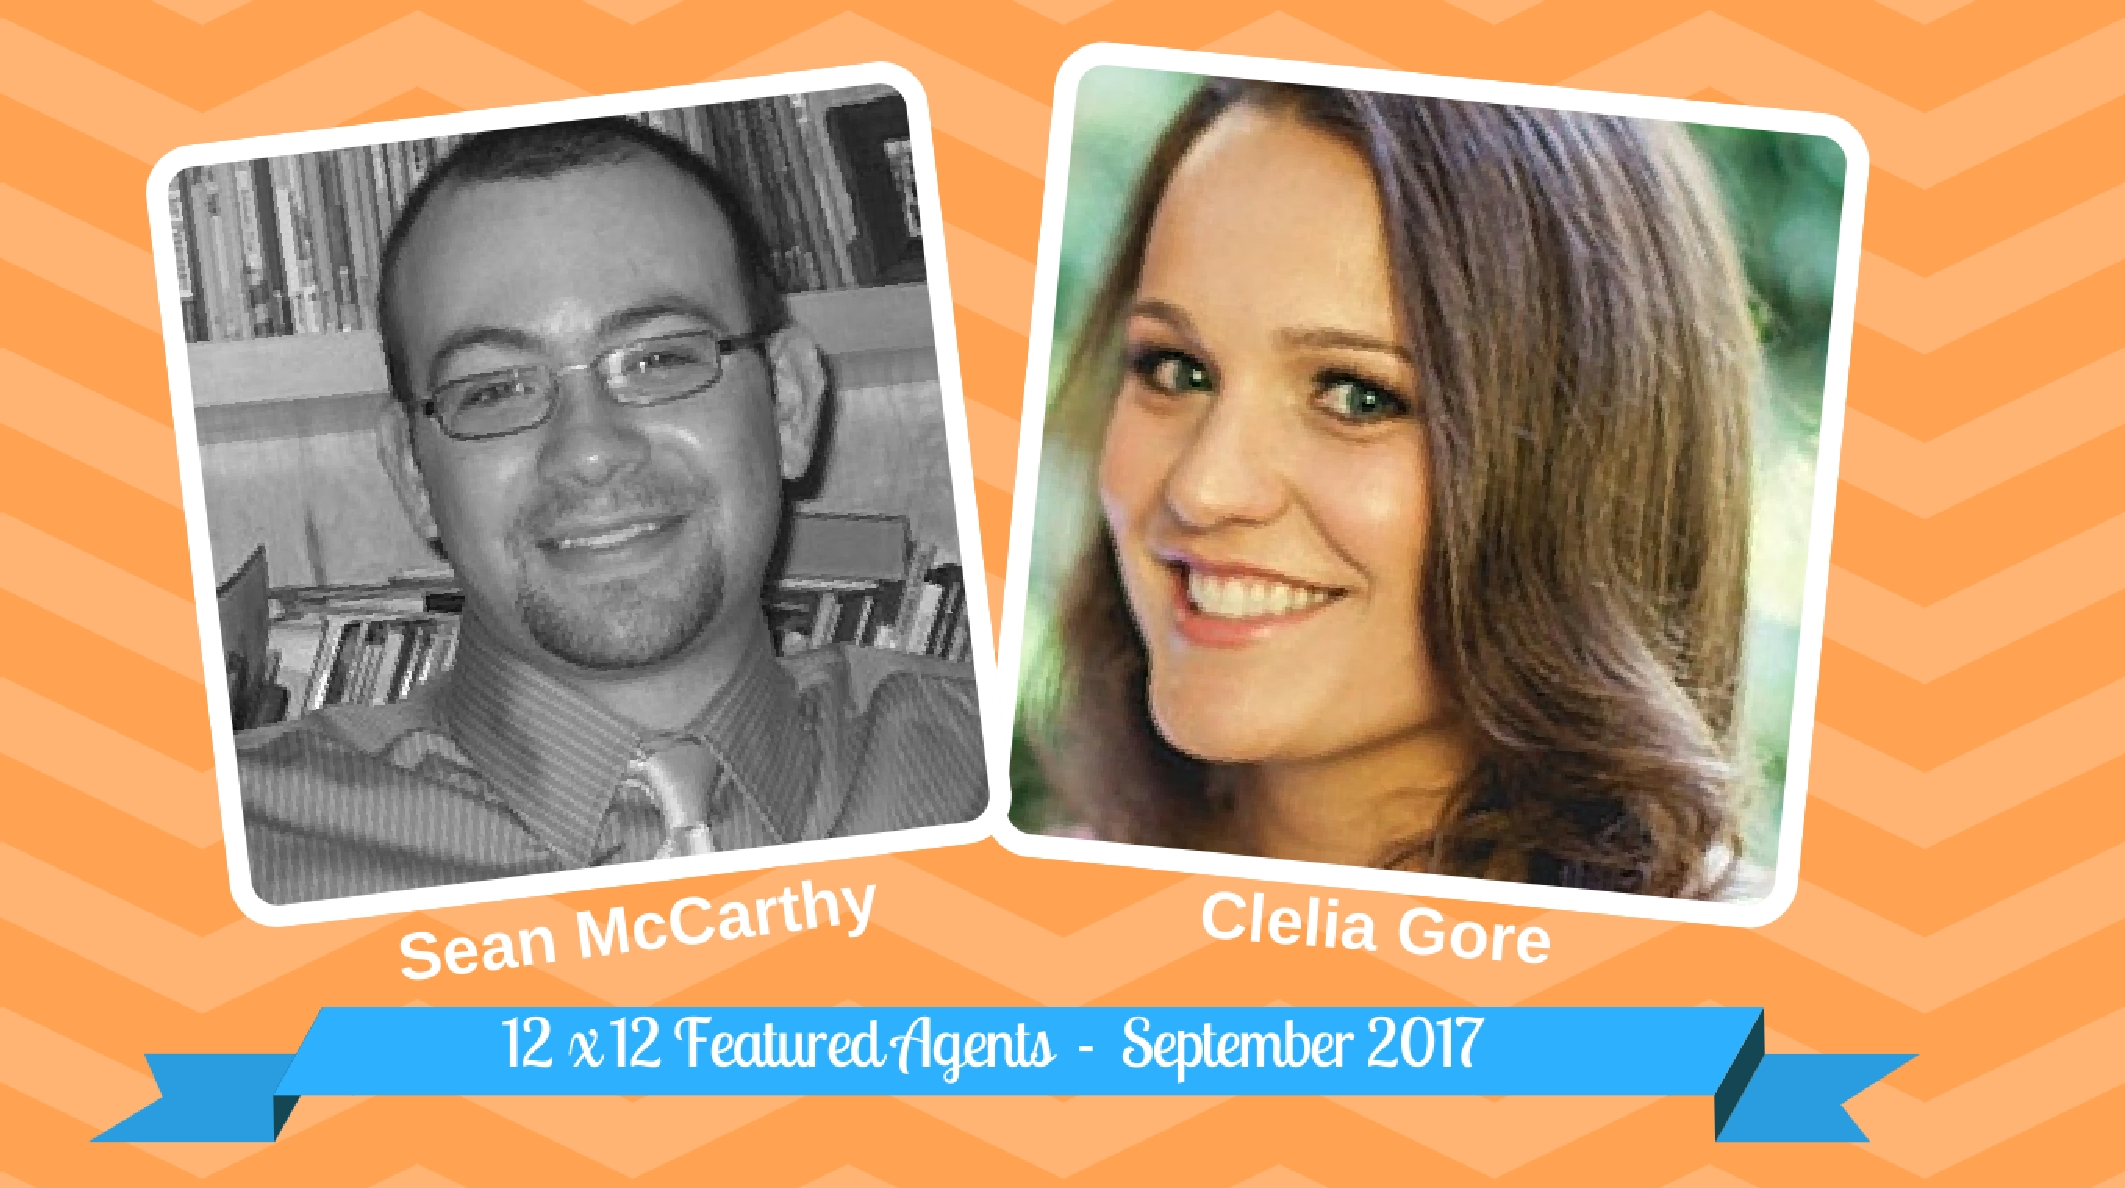 Sean McCarthy & Clelia Gore – 12 X 12 Featured Agents September 2017